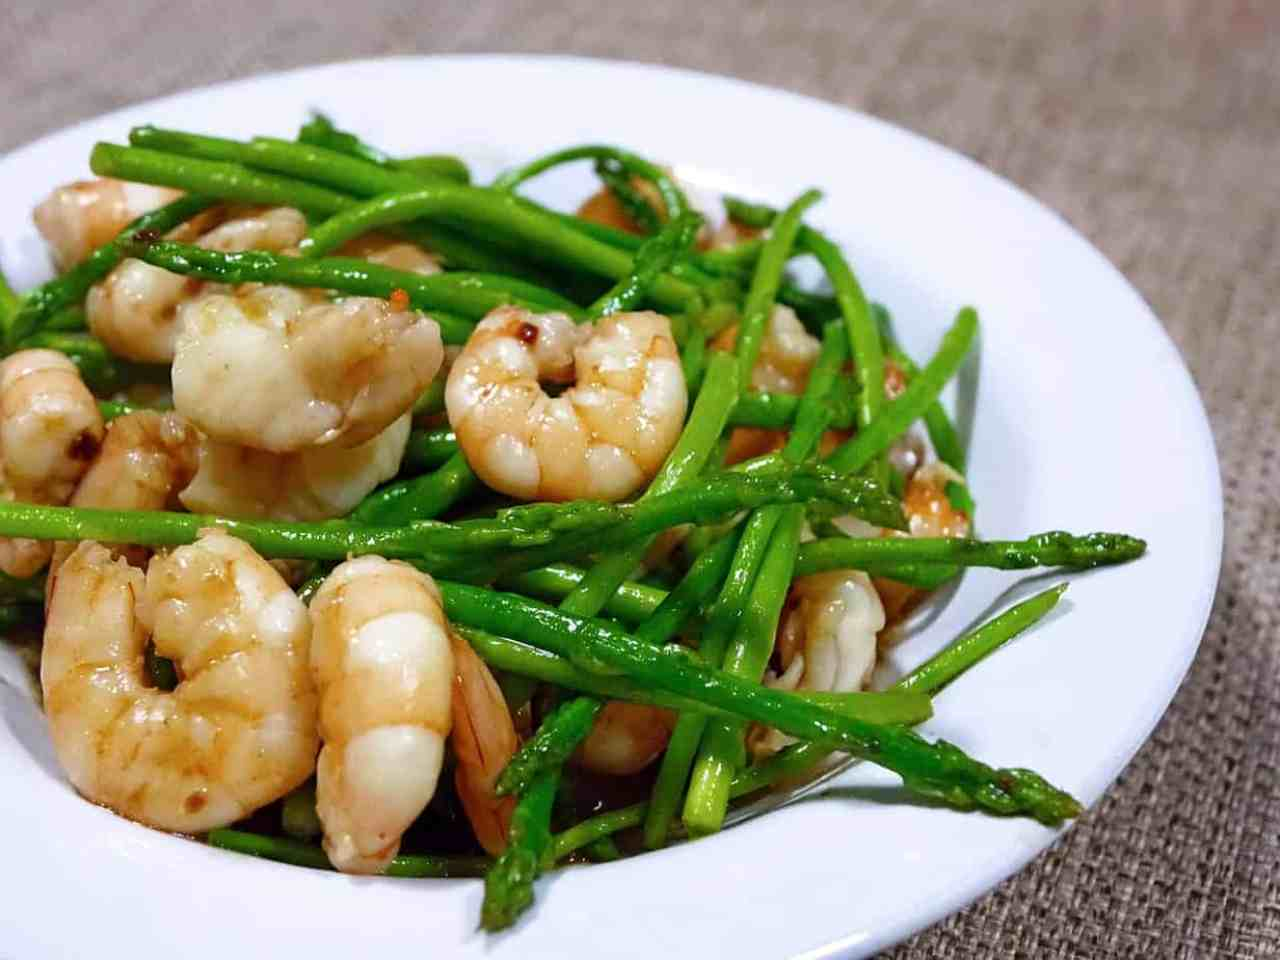 Asparagus and prawns